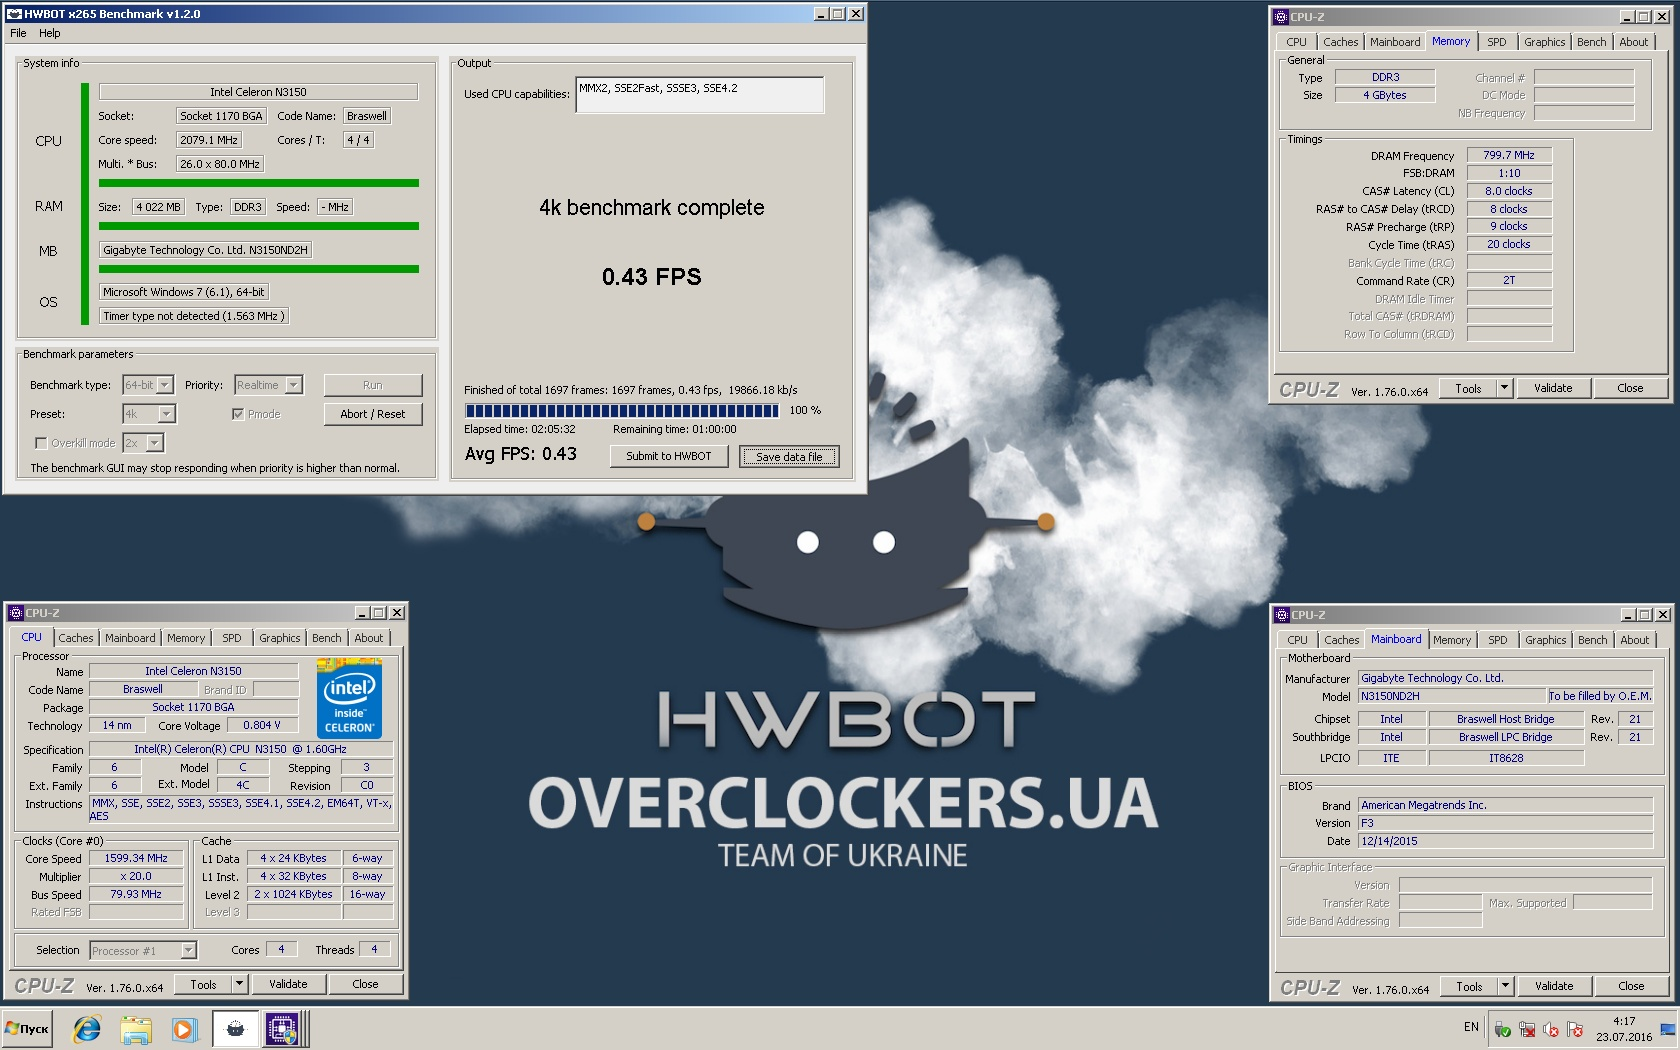 TyphooNick`s HWBOT x265 Benchmark - 4k score: 0 43 fps with a